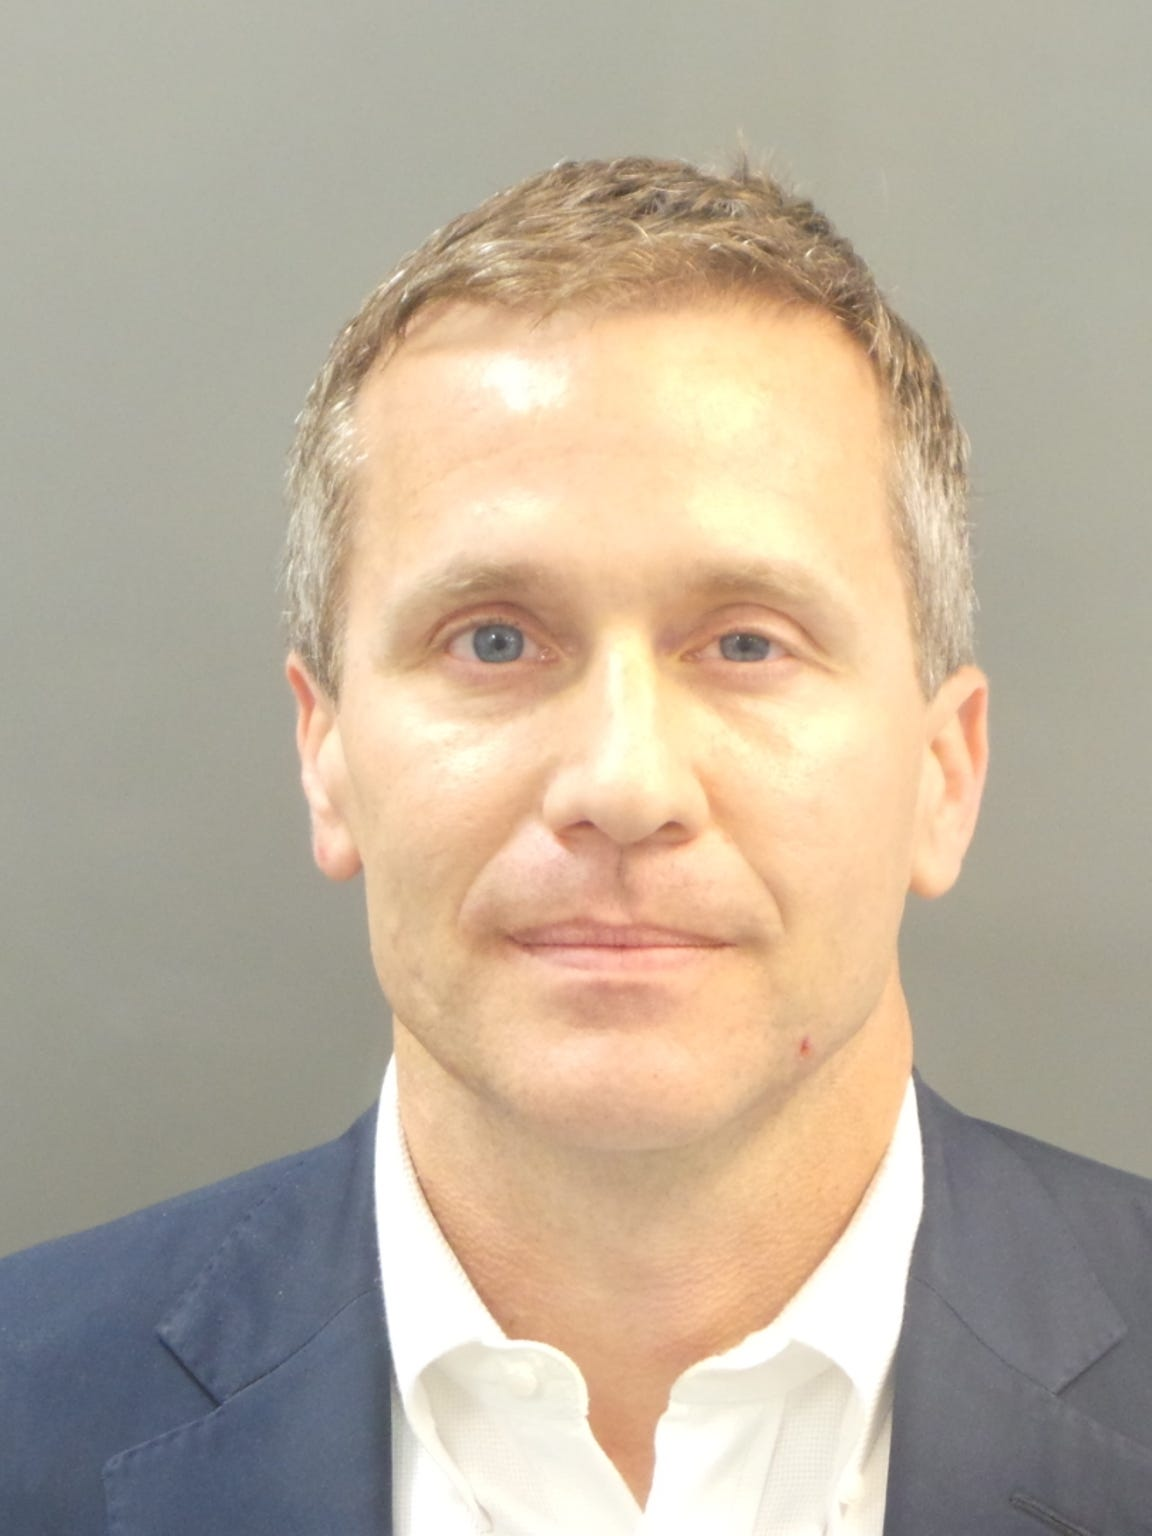 Missouri Gov. Eric Greitens' booking photo. He was